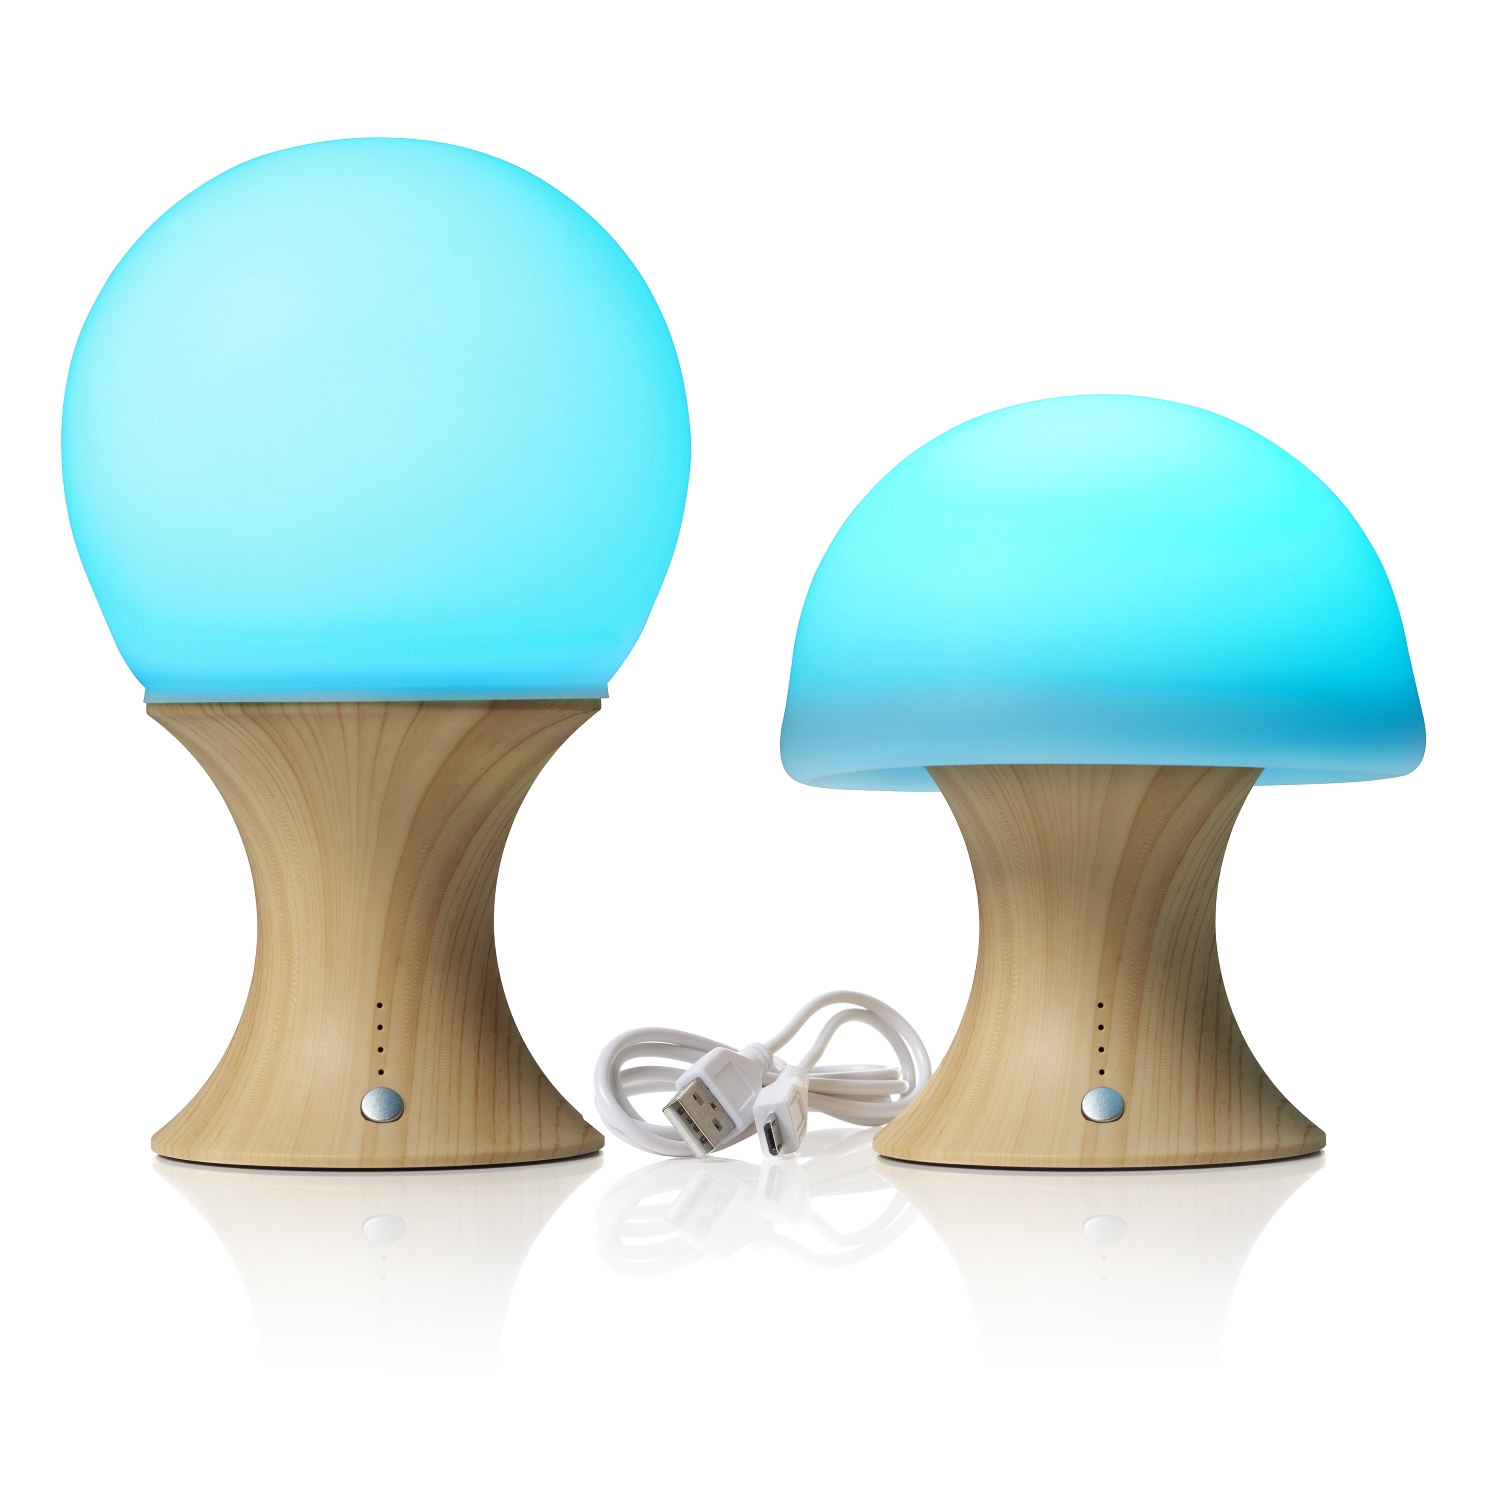 colour changing wireless usb rechargeable led mushroom. Black Bedroom Furniture Sets. Home Design Ideas